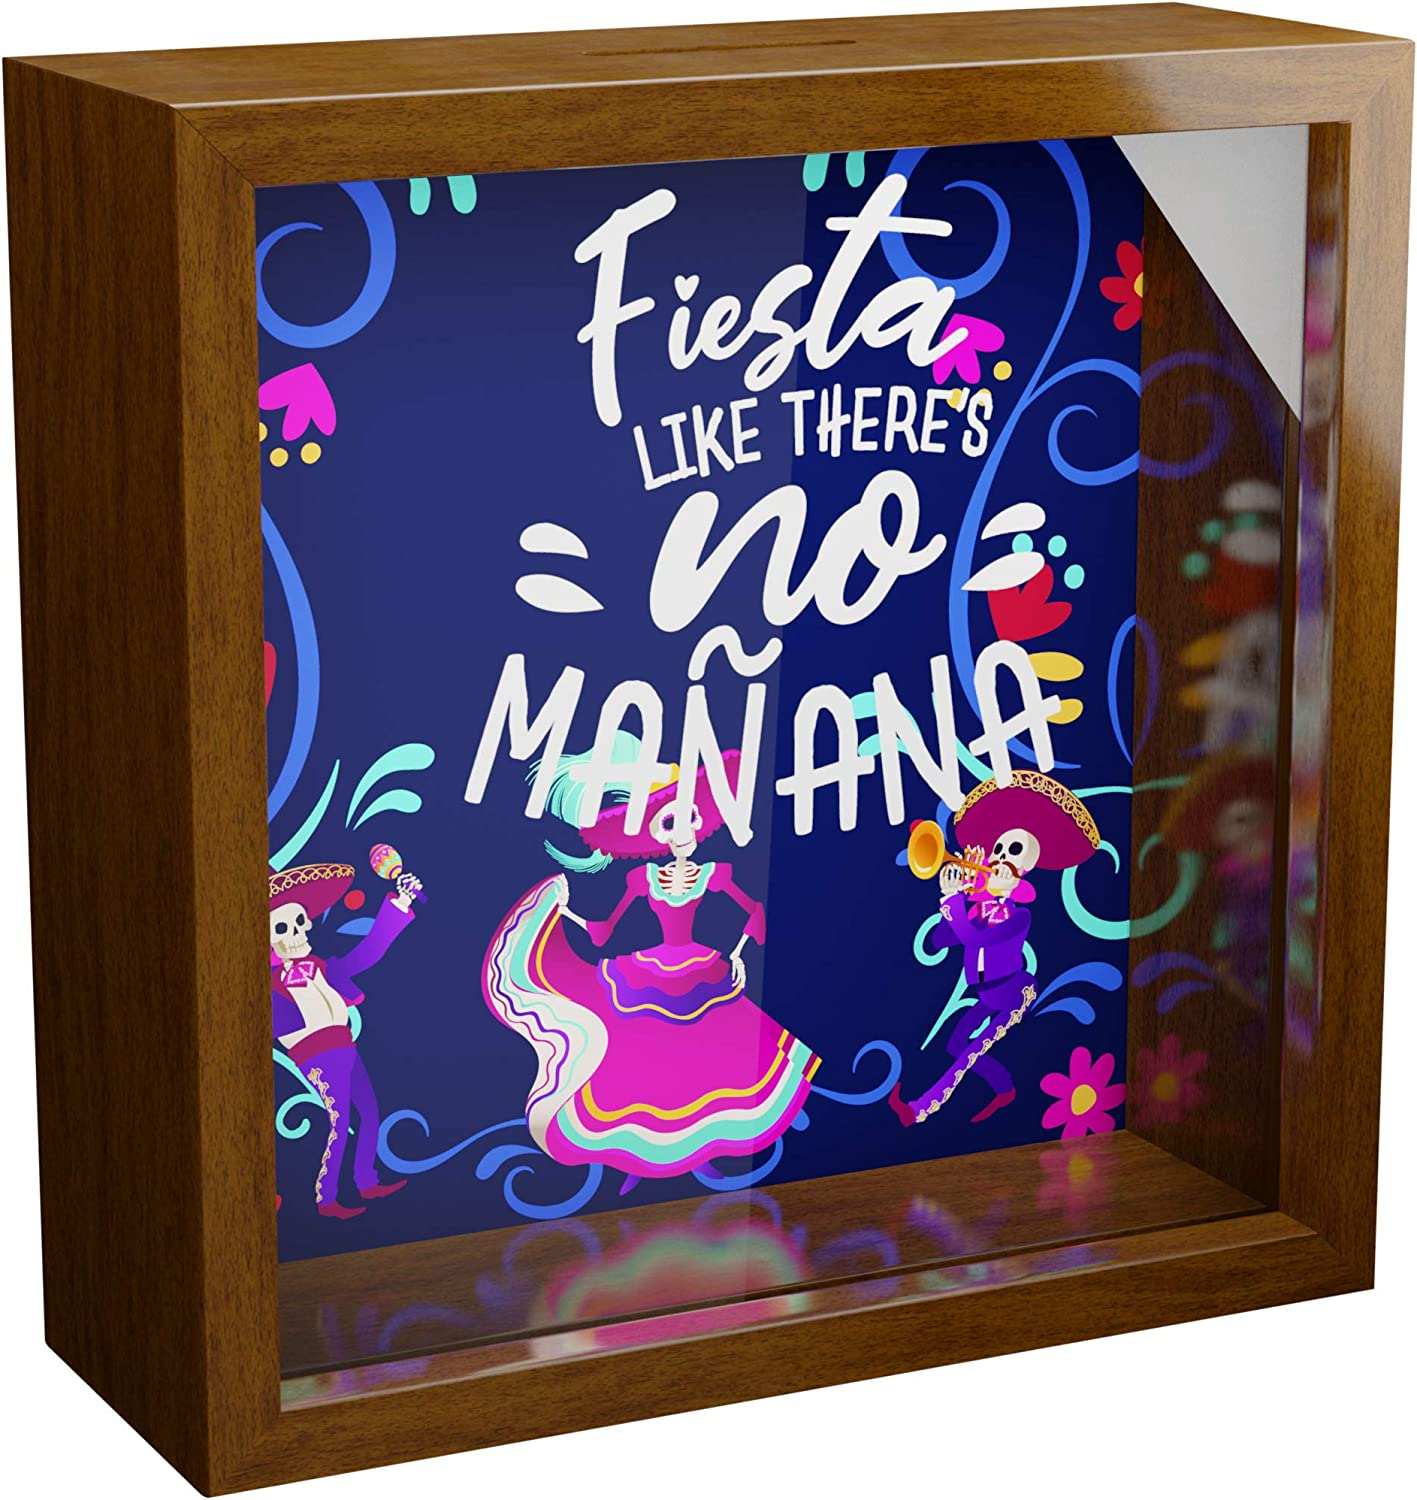 Mexican Gifts for Friends | 6x6x2 Shadow Box with Glass Front | Mexico Decorations for Wall or Tabletop | Wooden Memory Box for Latin Decor | Great for Mexican and Latino Friends